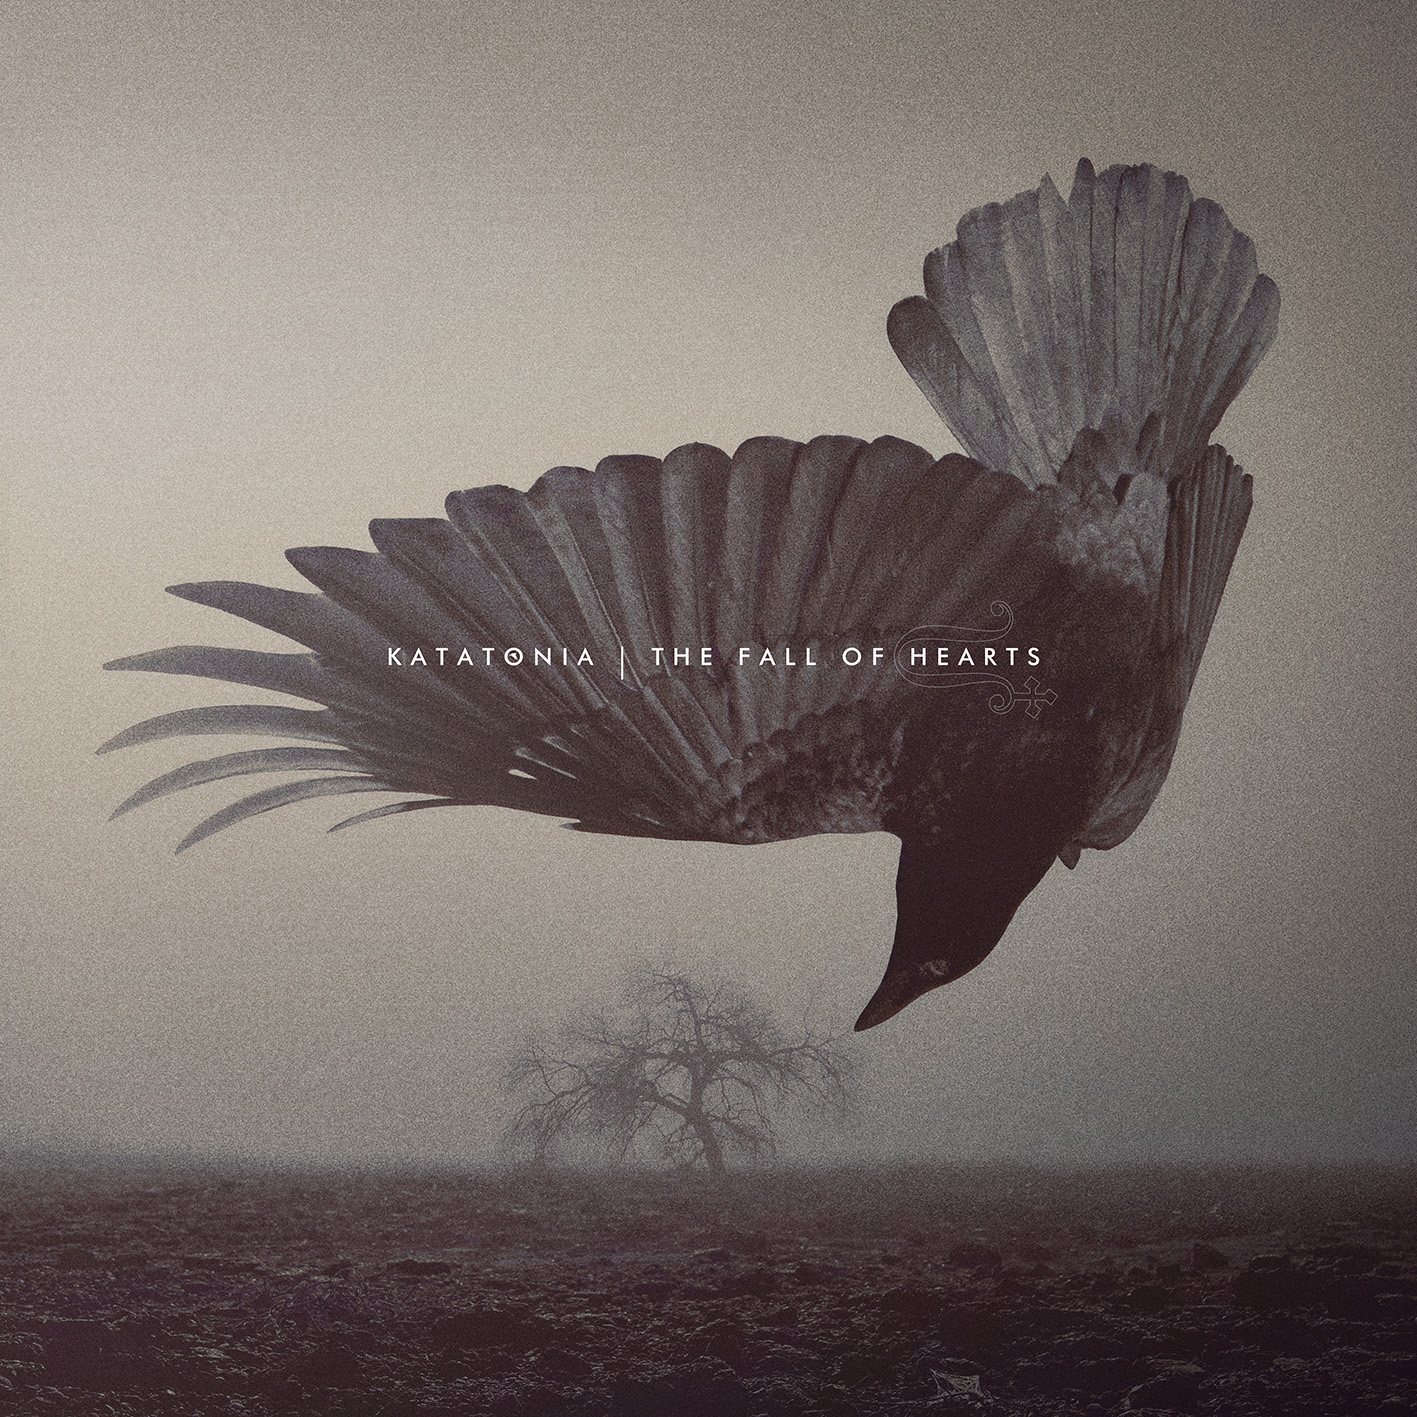 Katatonia - The Fall Of Hearts - Album Cover